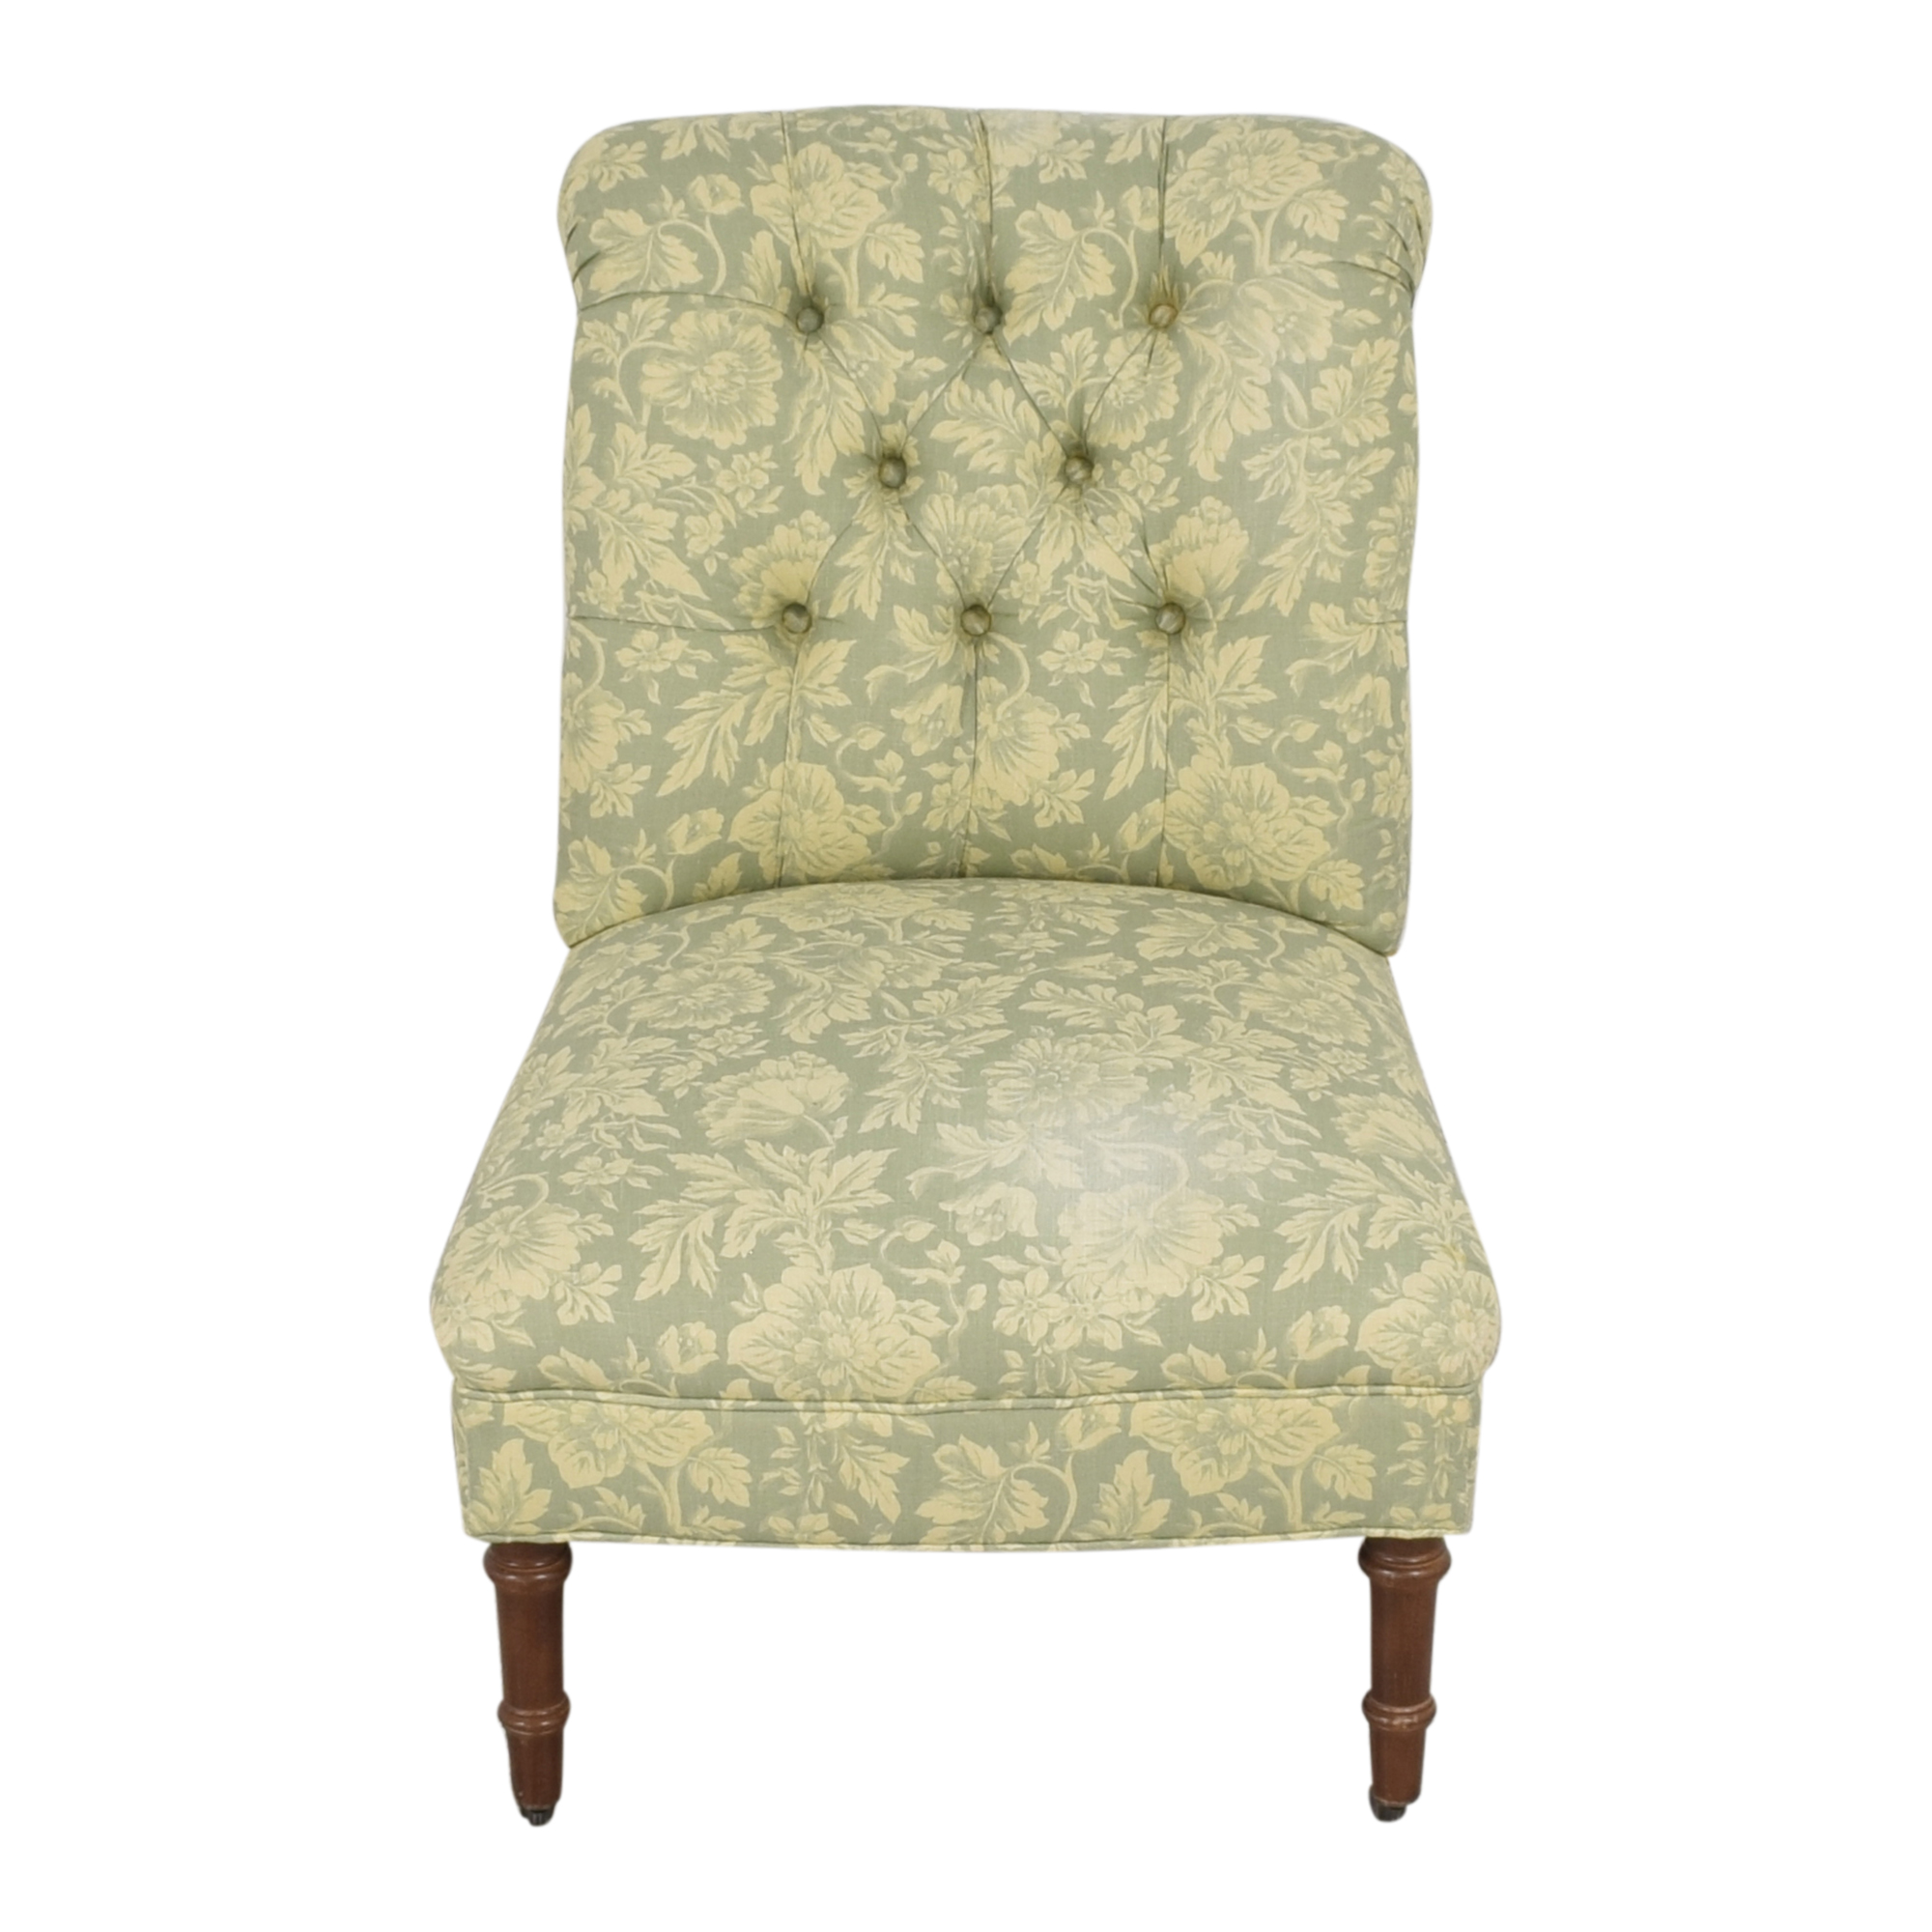 Lee Industries Lee Industries Tufted Armless Accent Chair ma